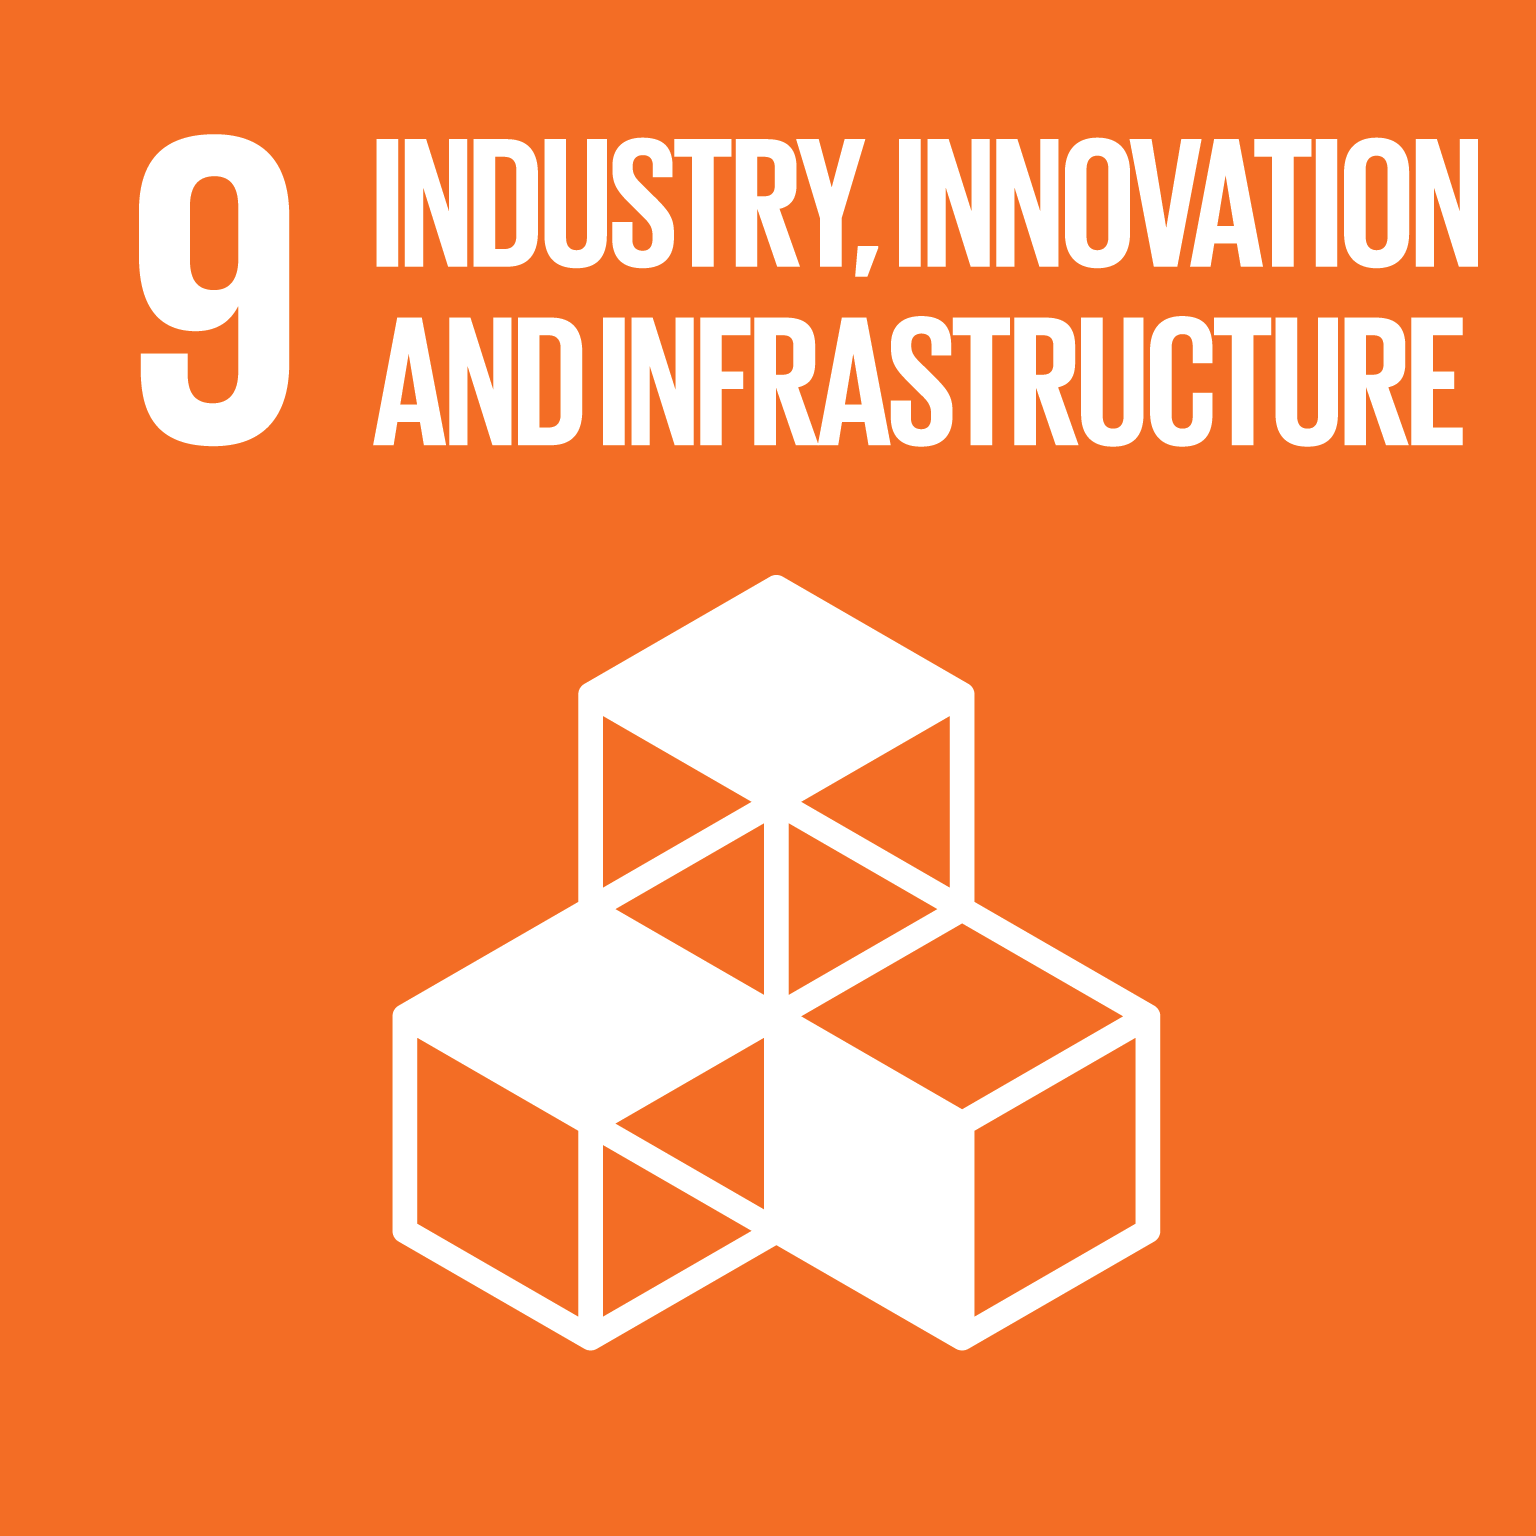 Industry, Innovation and Infrastructure - Build resilient infrastructure, promote sustainable industrialization and foster innovation